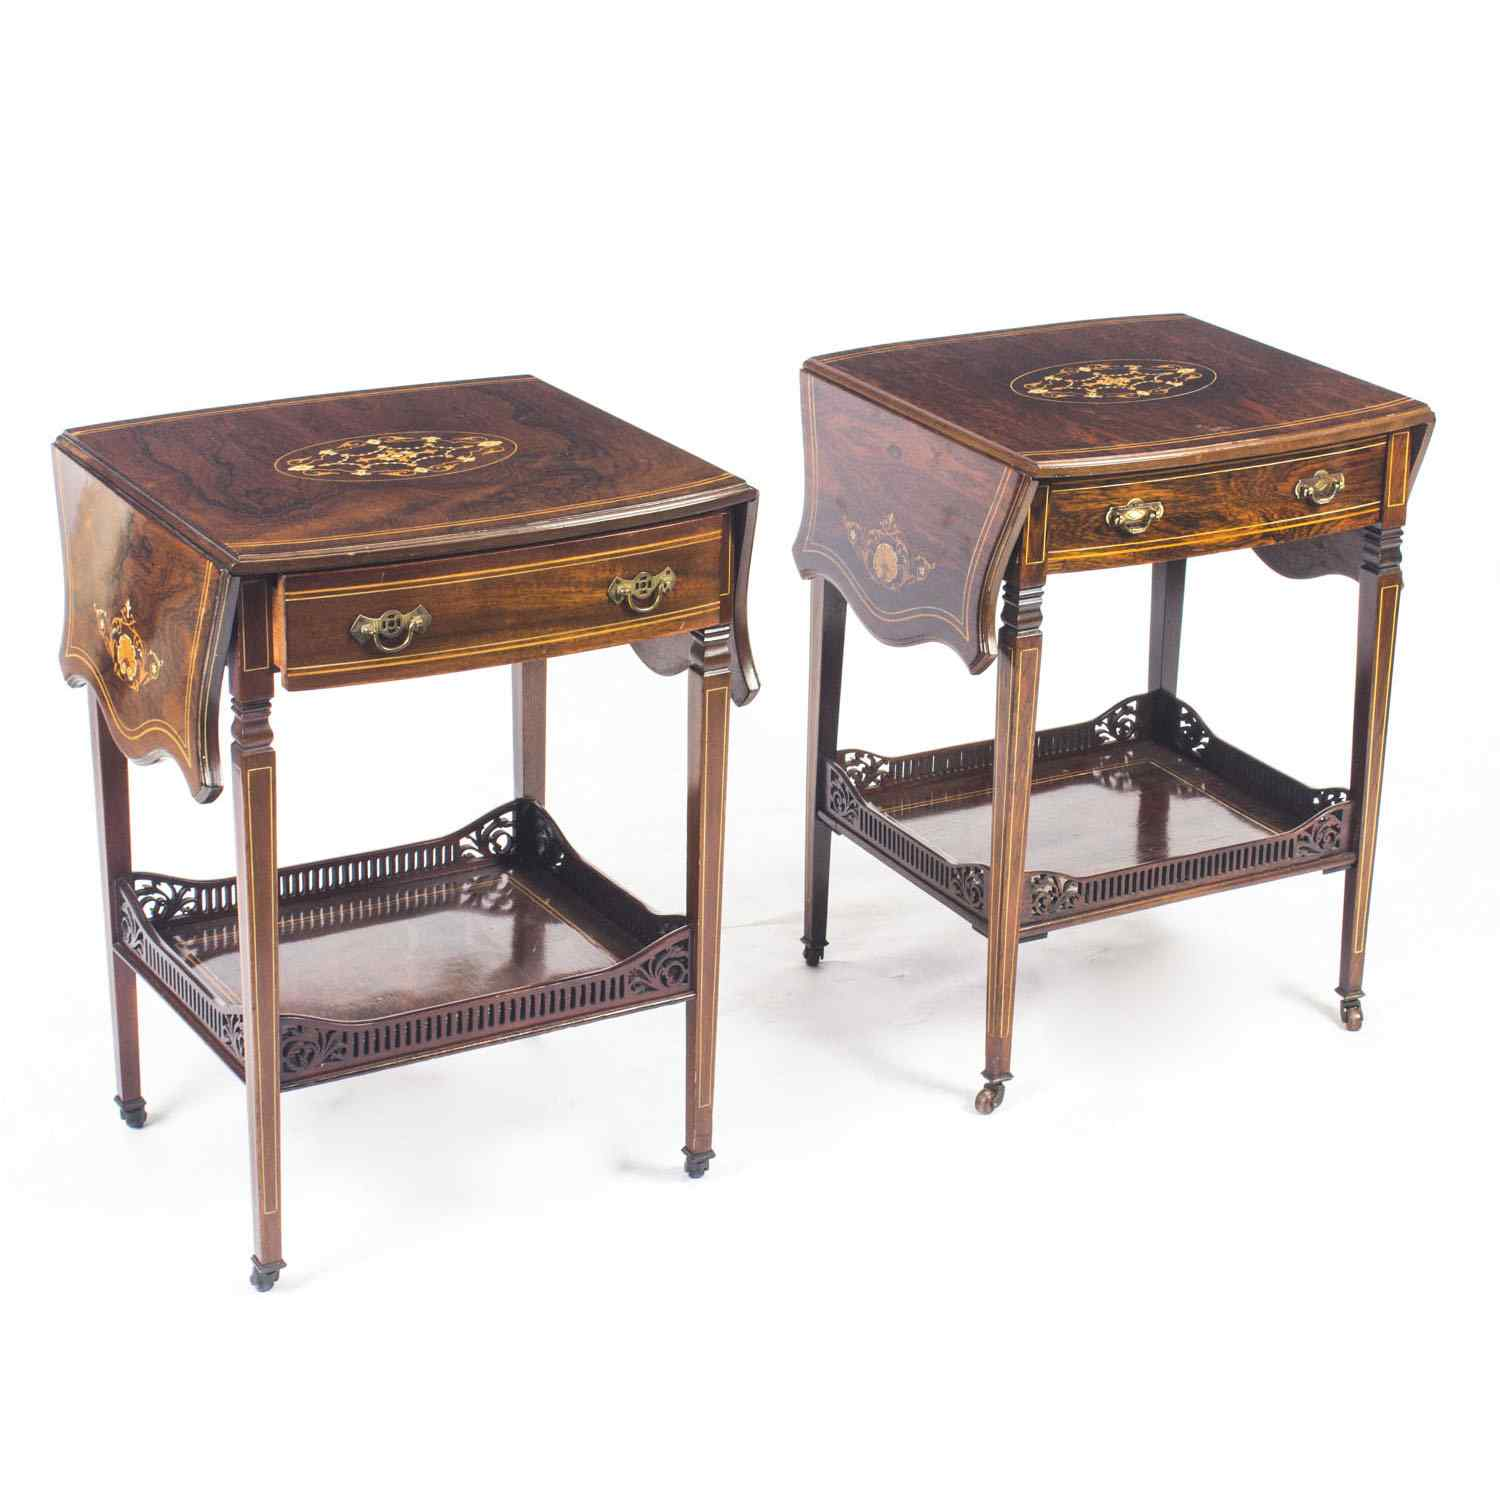 Antique Pair English Marquetry Inlaid Bedside Tables 19th C